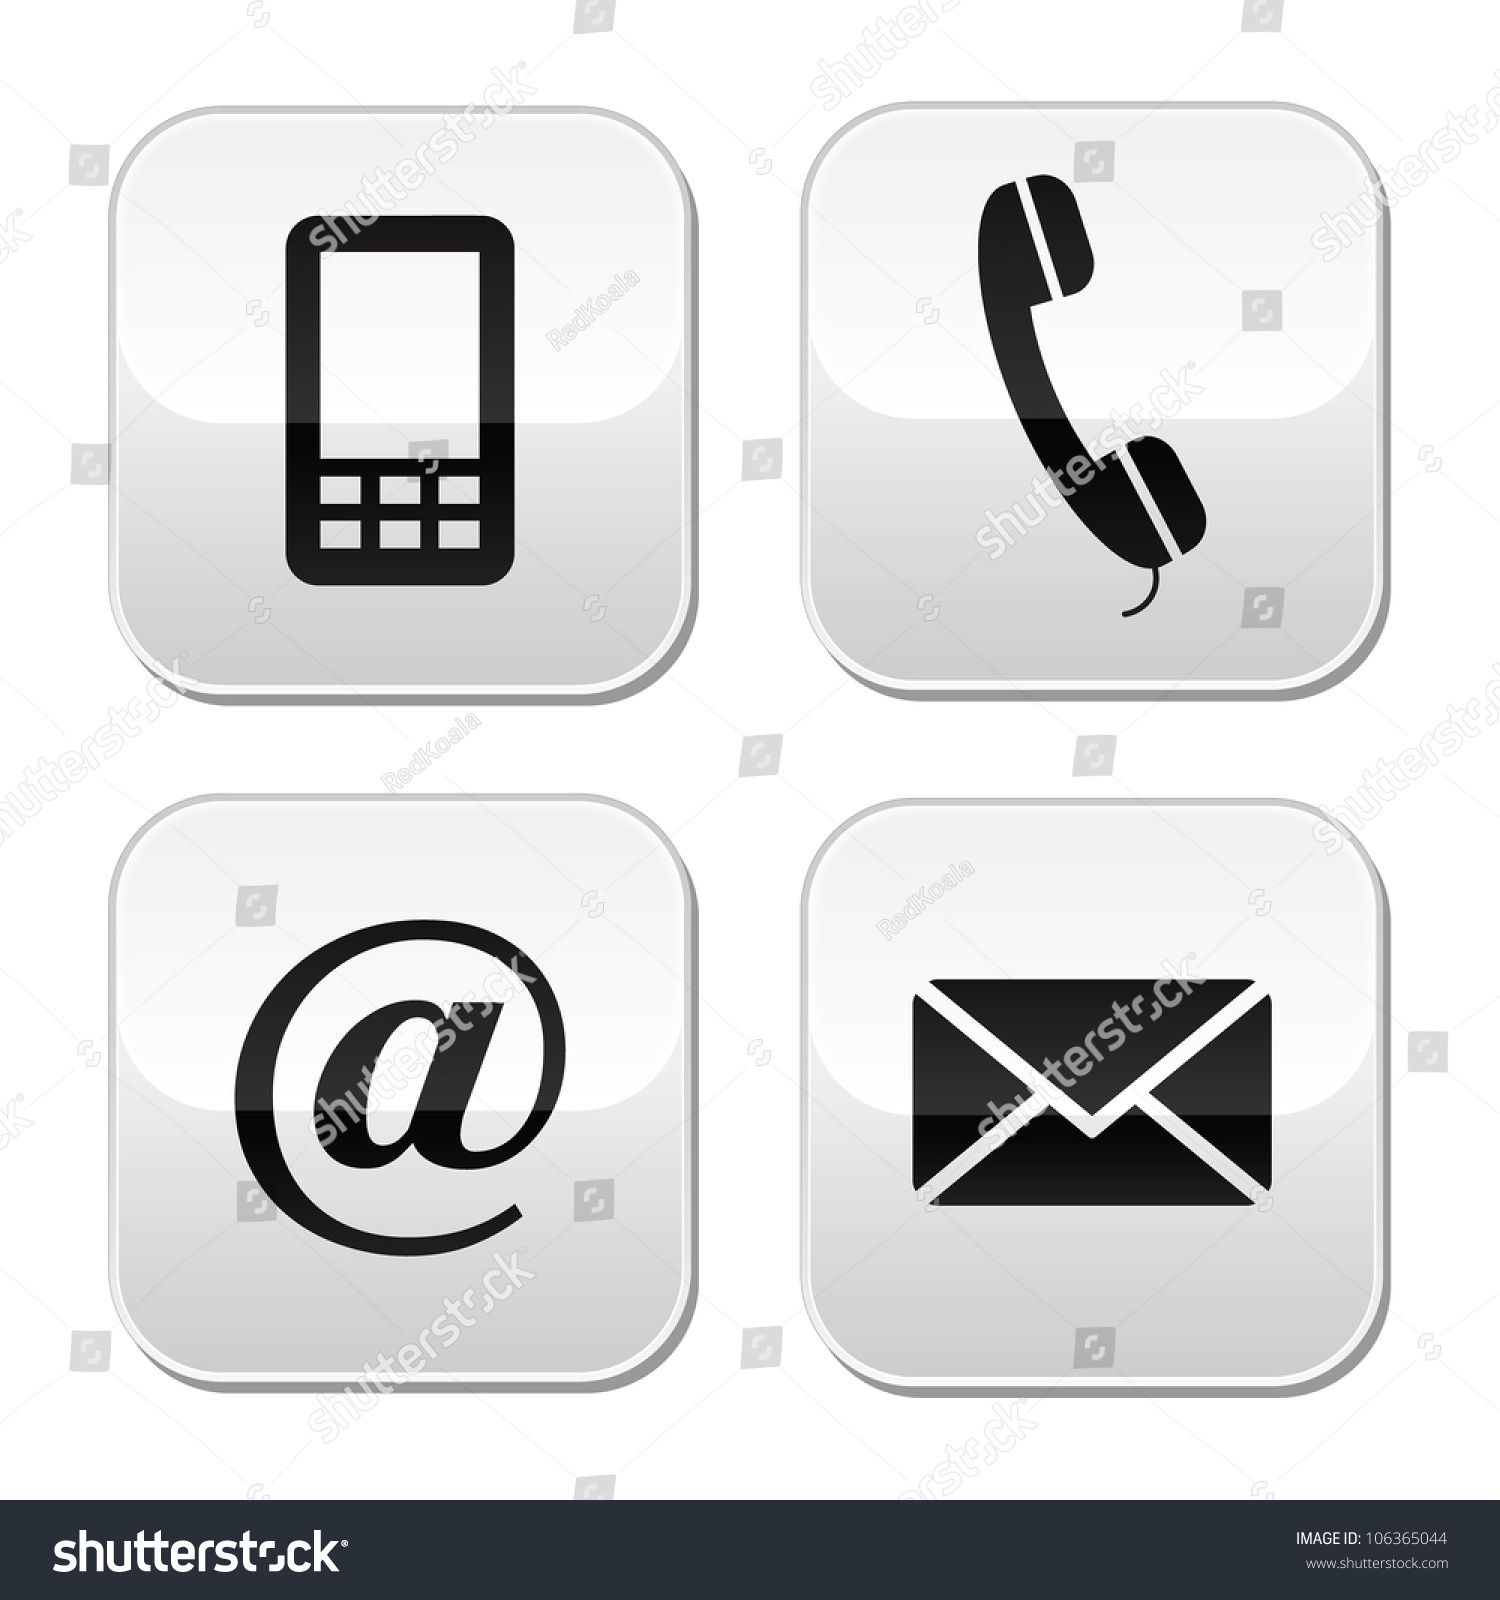 Contact Buttons Set Email Envelope Phone Mobile Icons Ad Affiliate Set Email Contact Buttons Mobile Icon Phone Logo Phone Icon